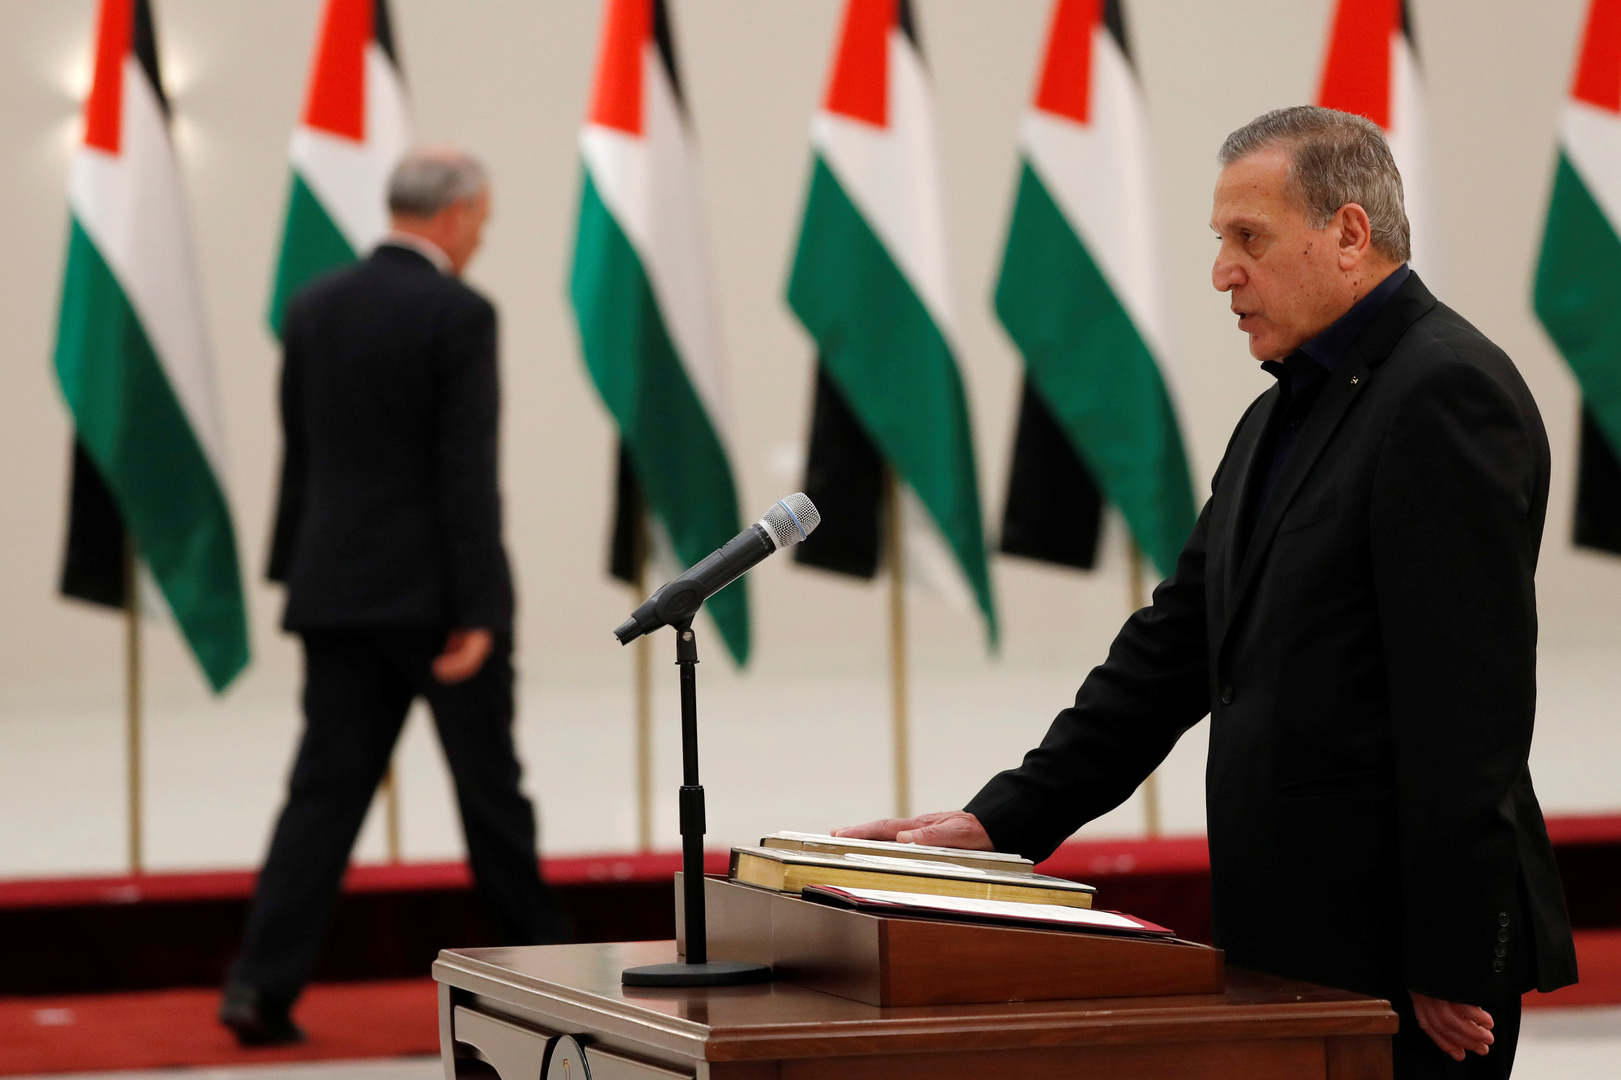 Palestinian Presidency: The Israeli government receives the Biden administration with settlements